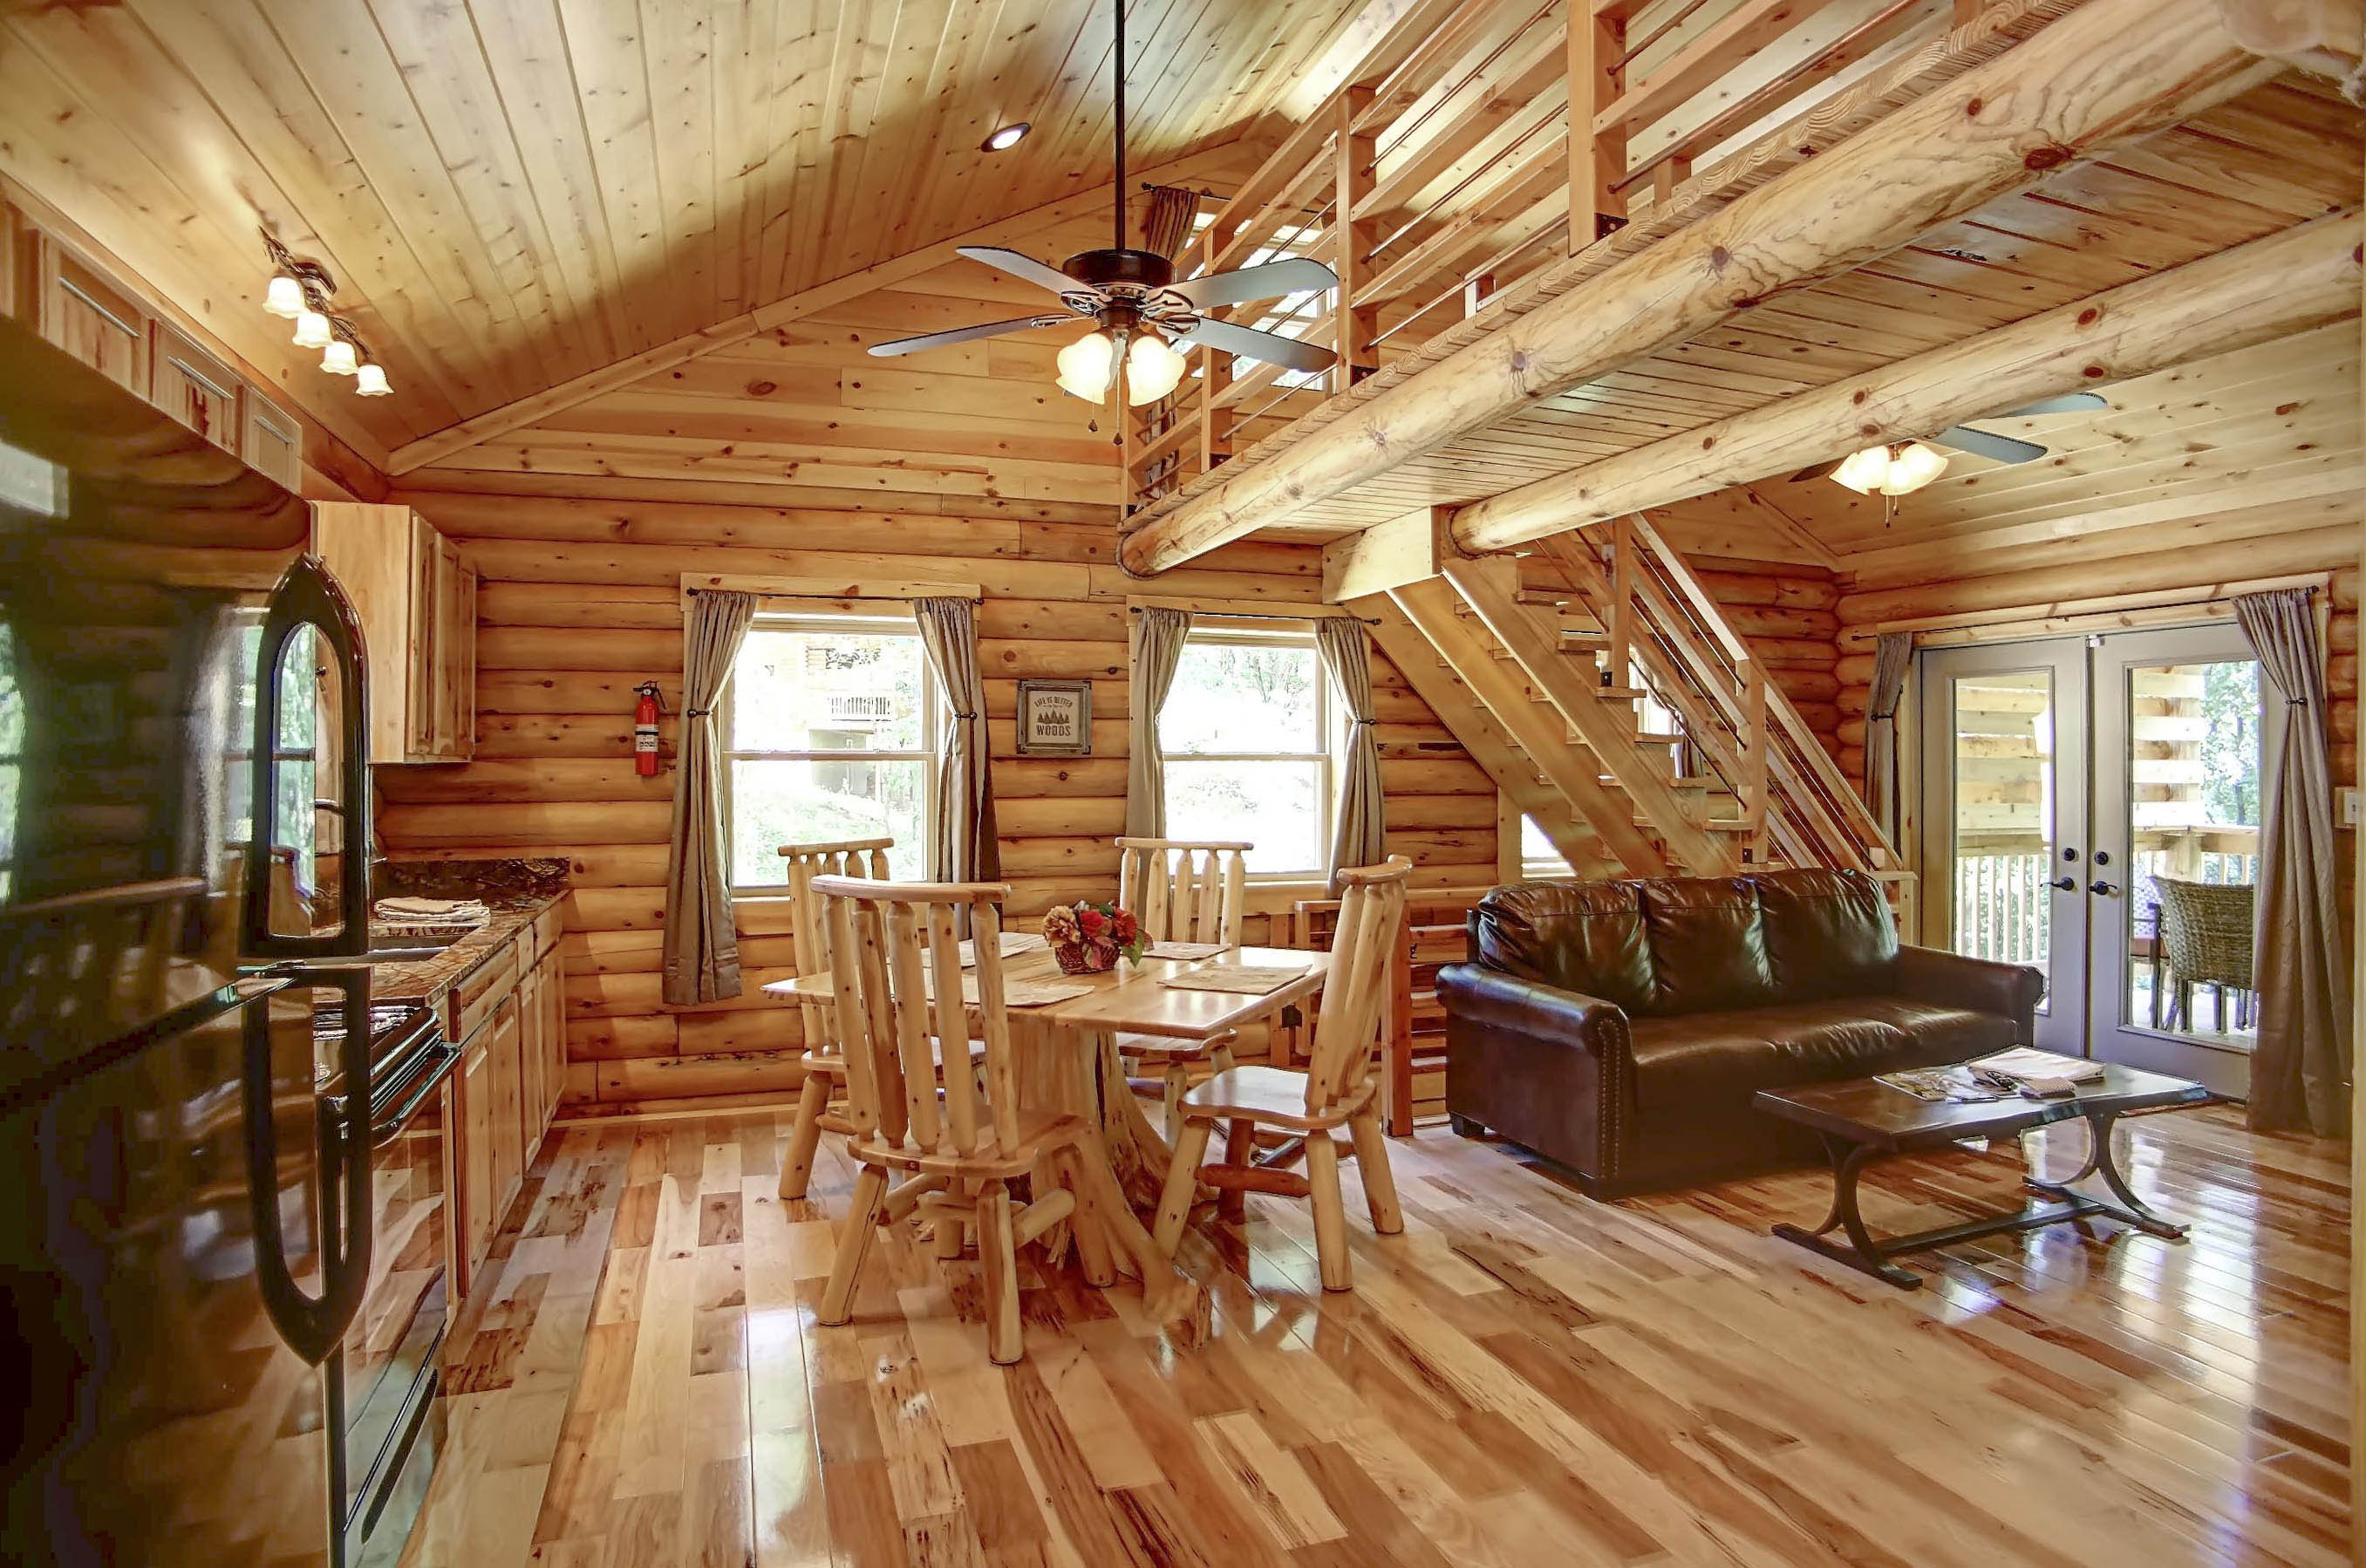 many to a their techohio cabins hocking choose visitors during cozy stay rent beautiful cabin escape hills